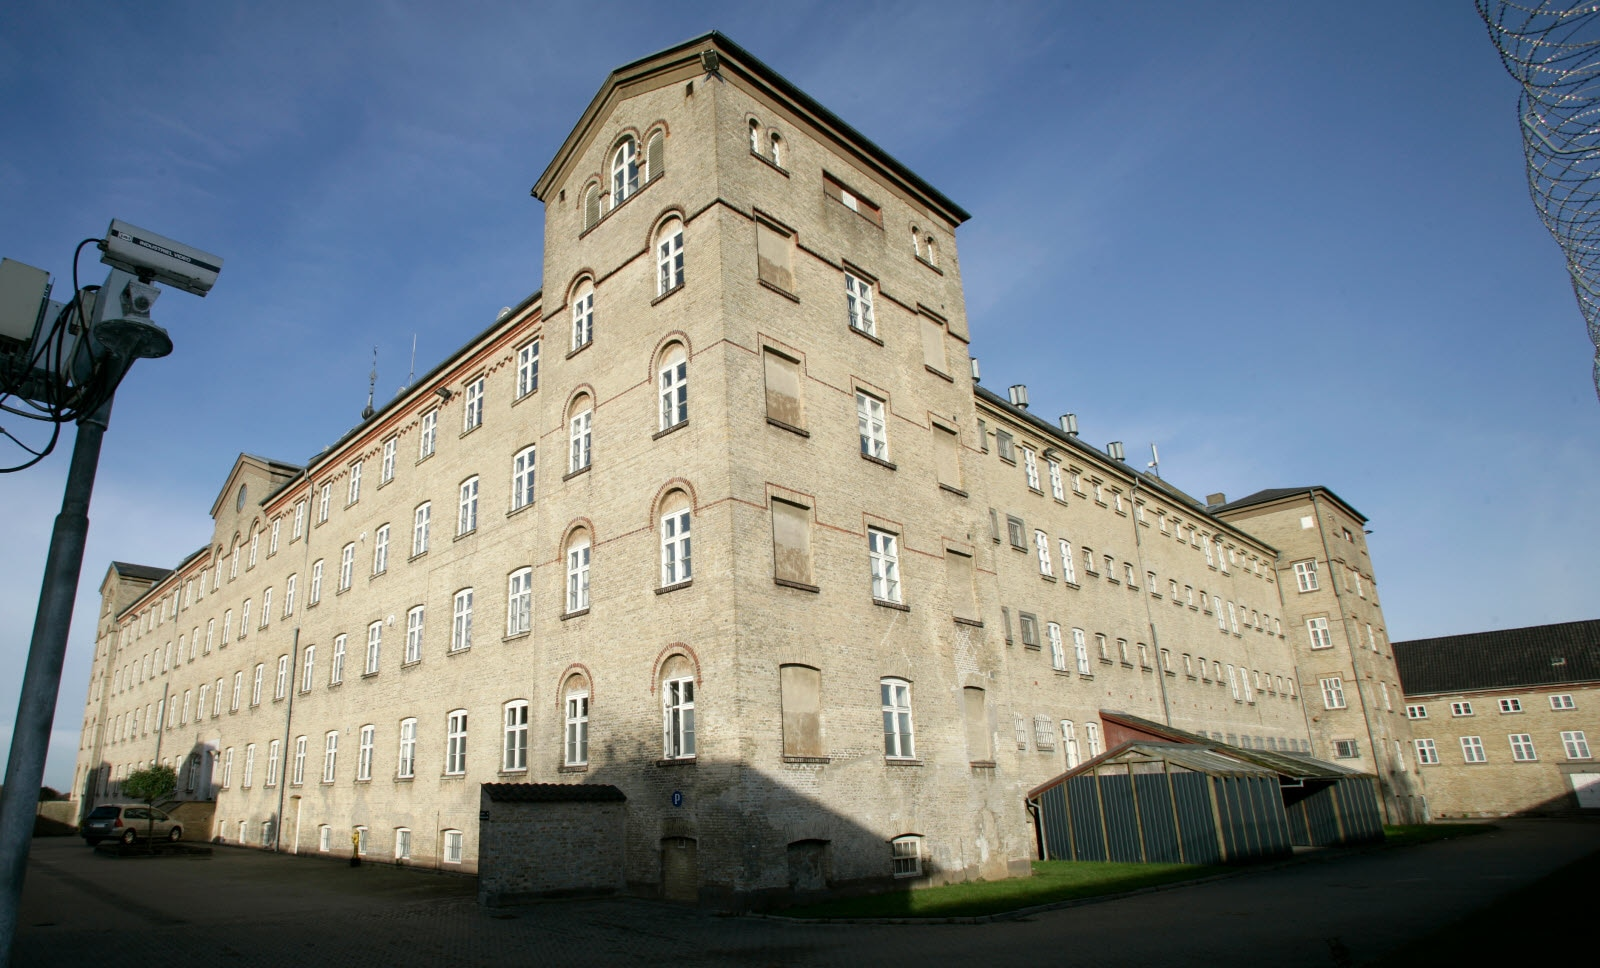 The prison in Horsens today holds a museum